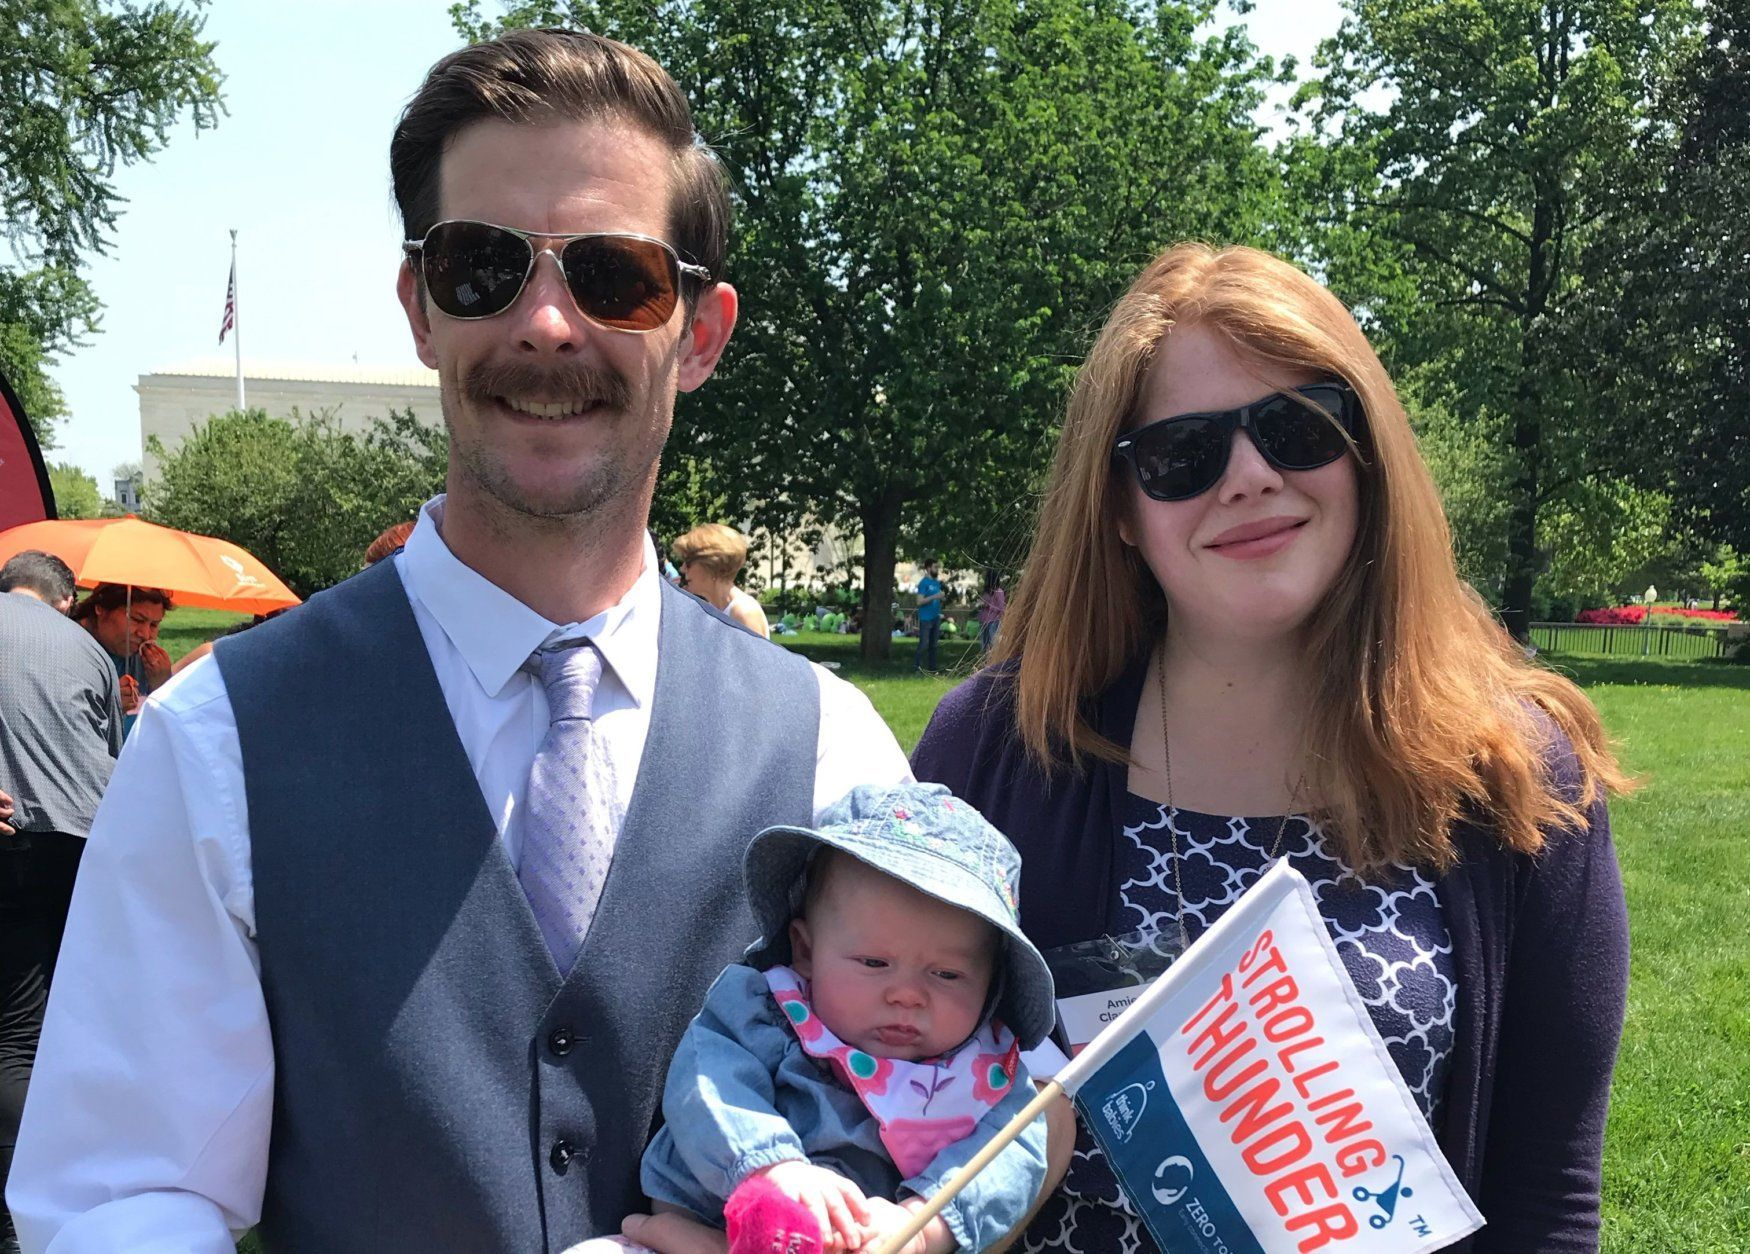 Ryan and Amie Clampitt and their 3-month-old daughter Penelope came from Bozeman, Montana, for the rally. (WTOP/Mitchell Miller)